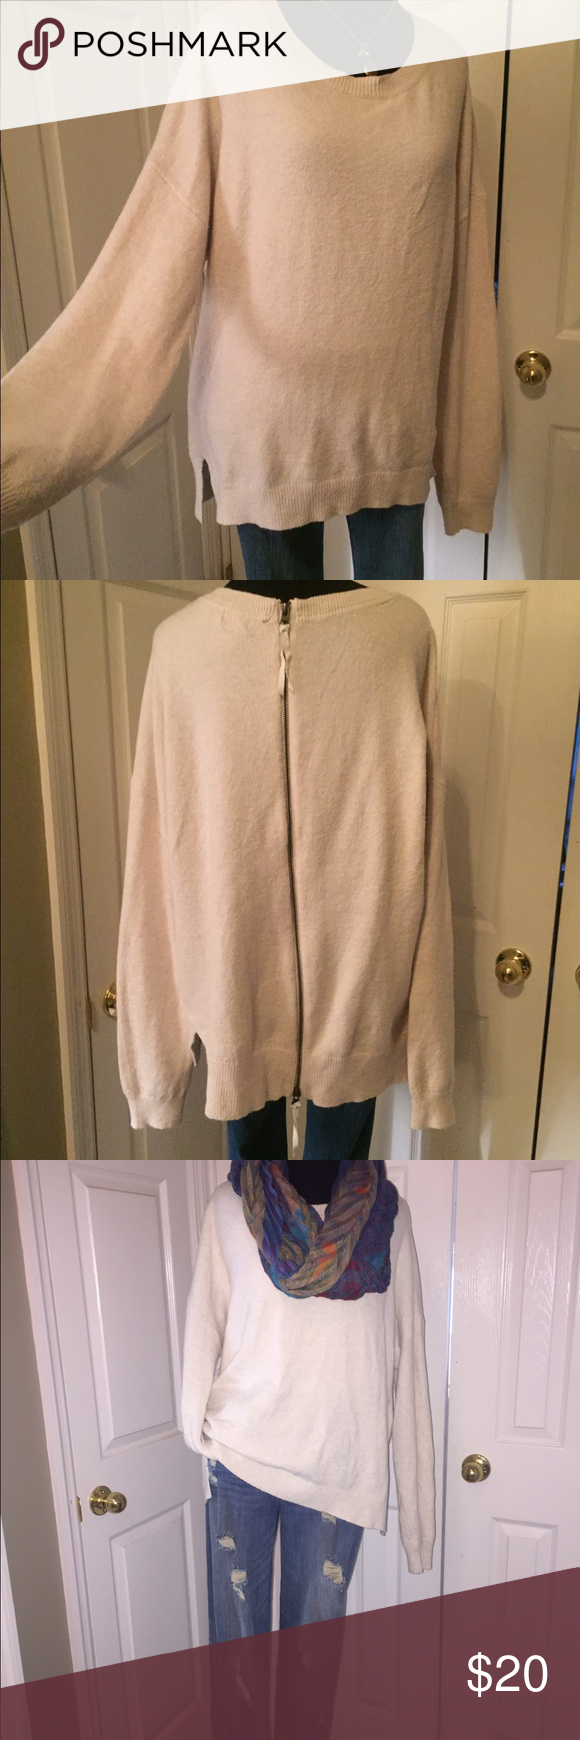 Hinge sweater Hinge cream sweater, size large, purchased at Nordstrom. Nice, soft cotton blend w/back zipper. Can be belted w/a skirt & boots or paired w/your favorite skinny jeans. Hinge Sweaters Crew & Scoop Necks